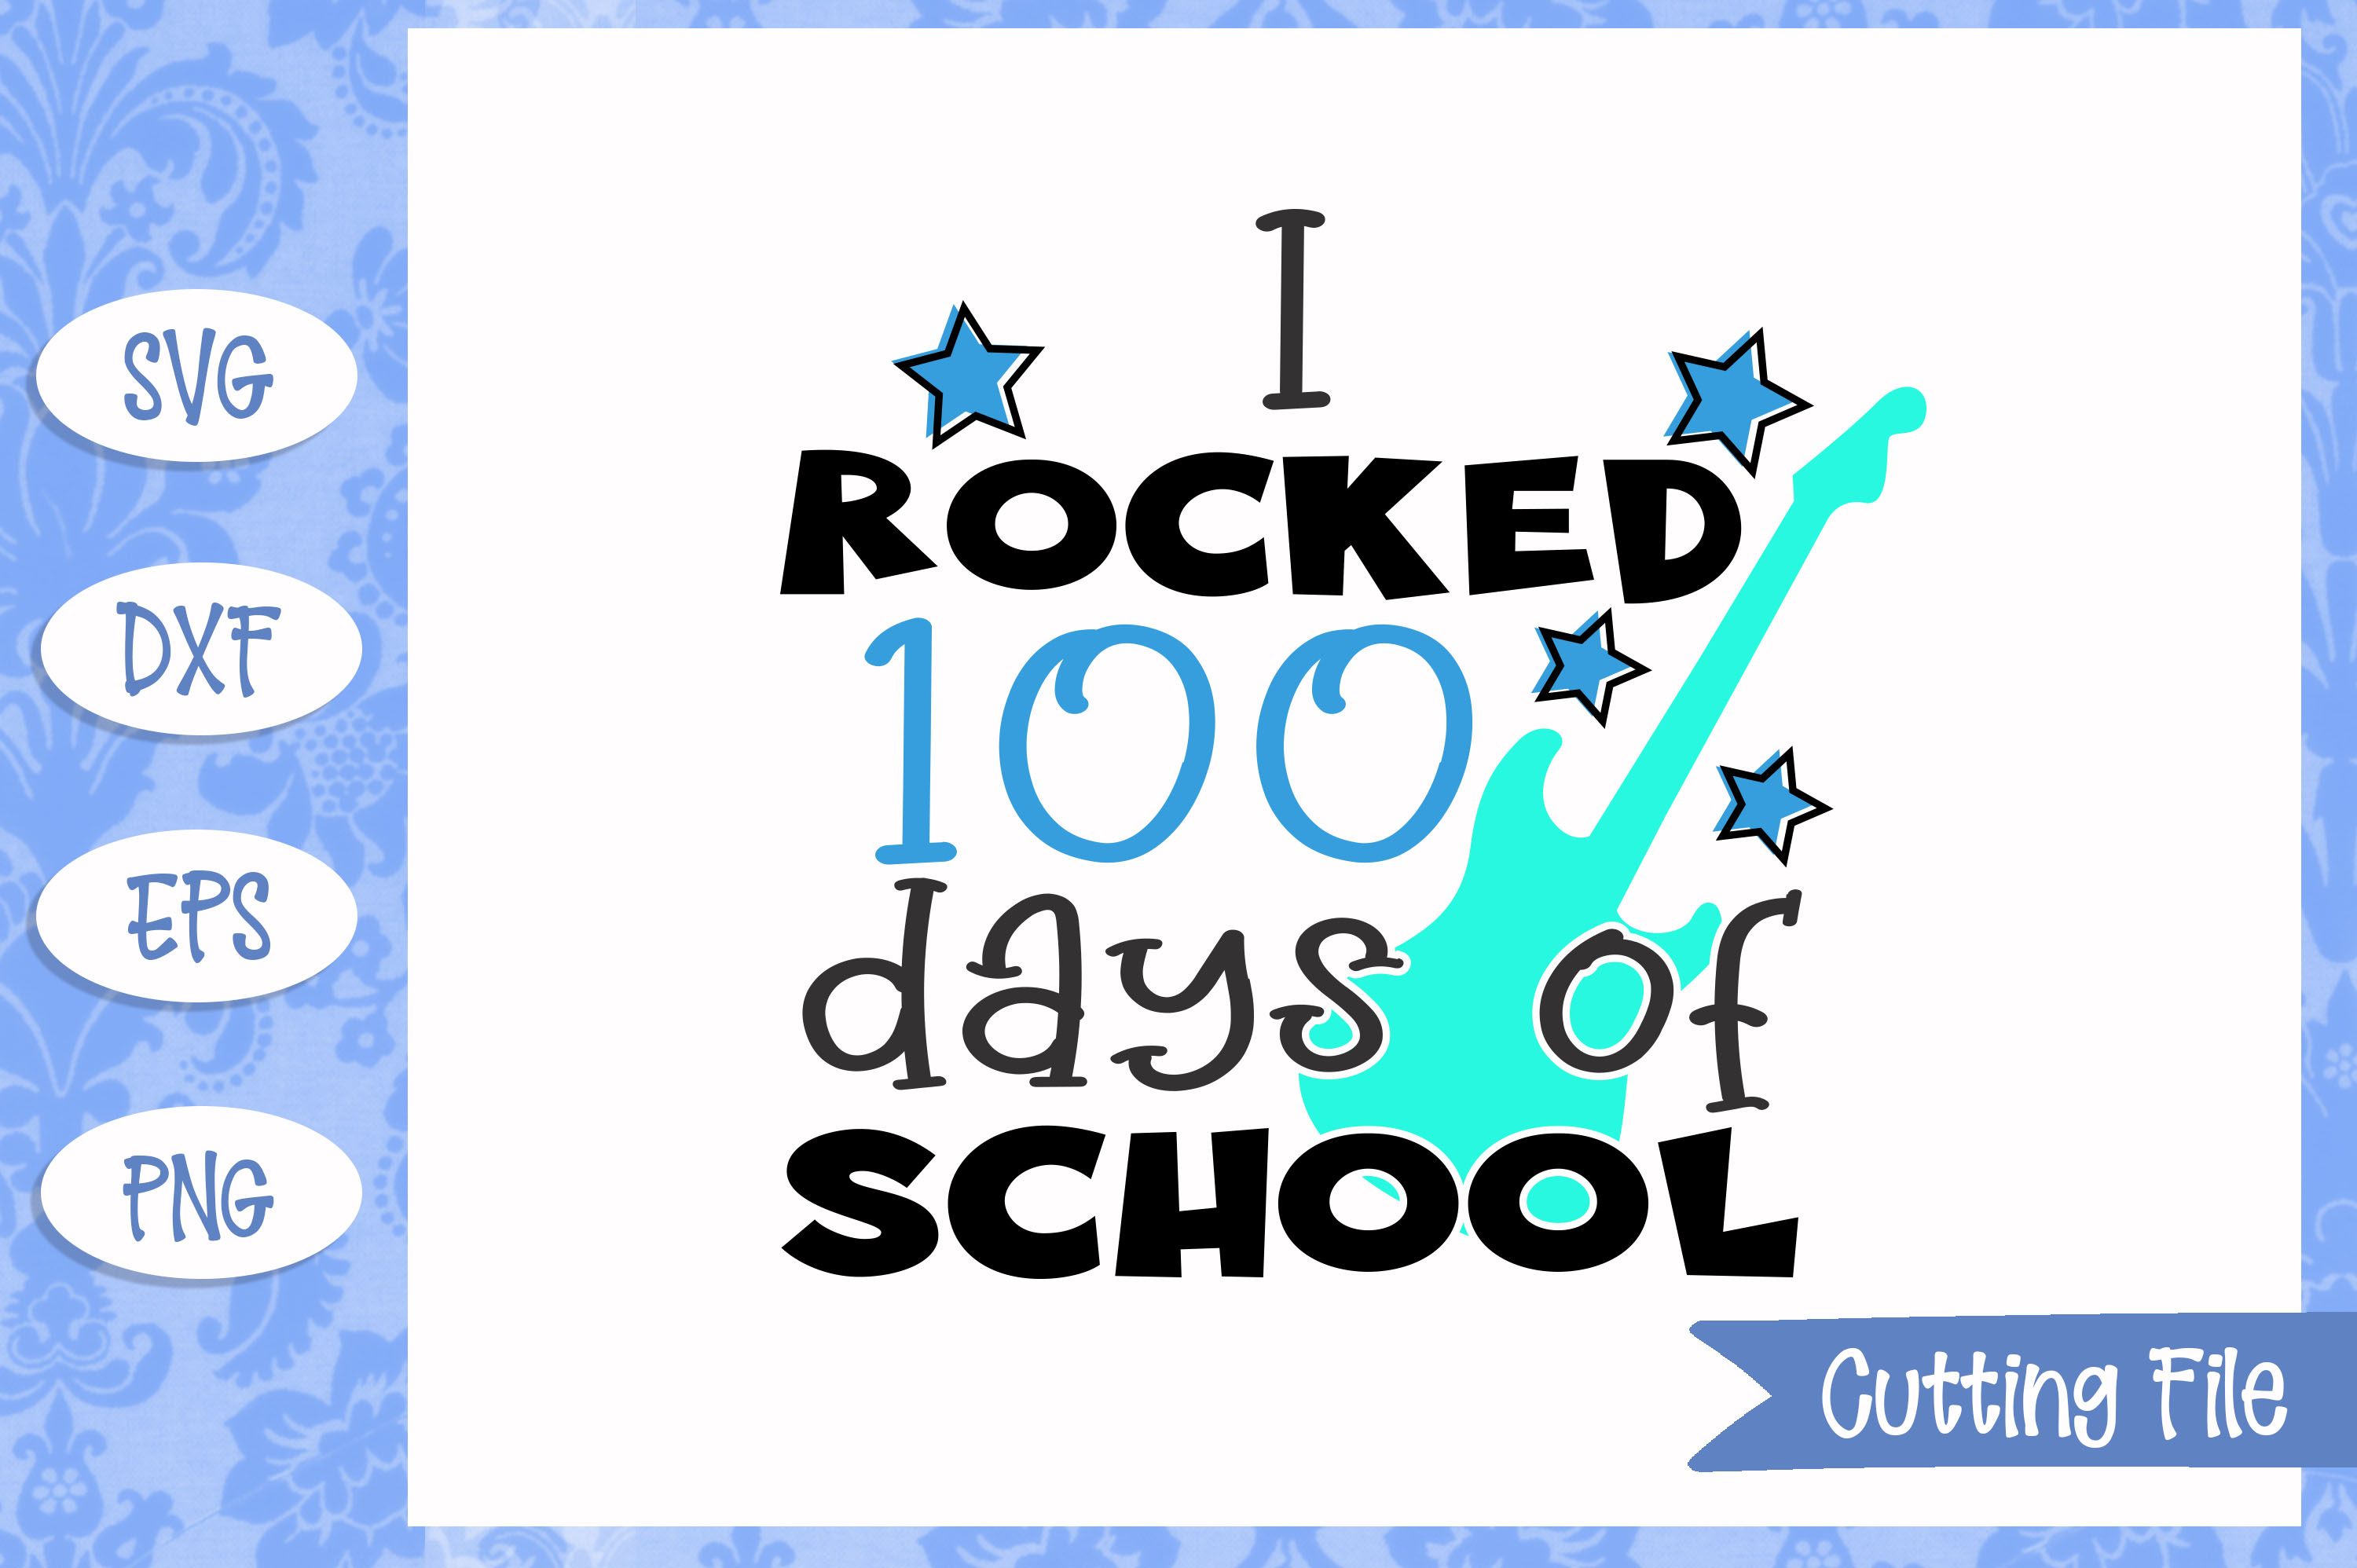 I rocked 100 days of school SVG File example image 1